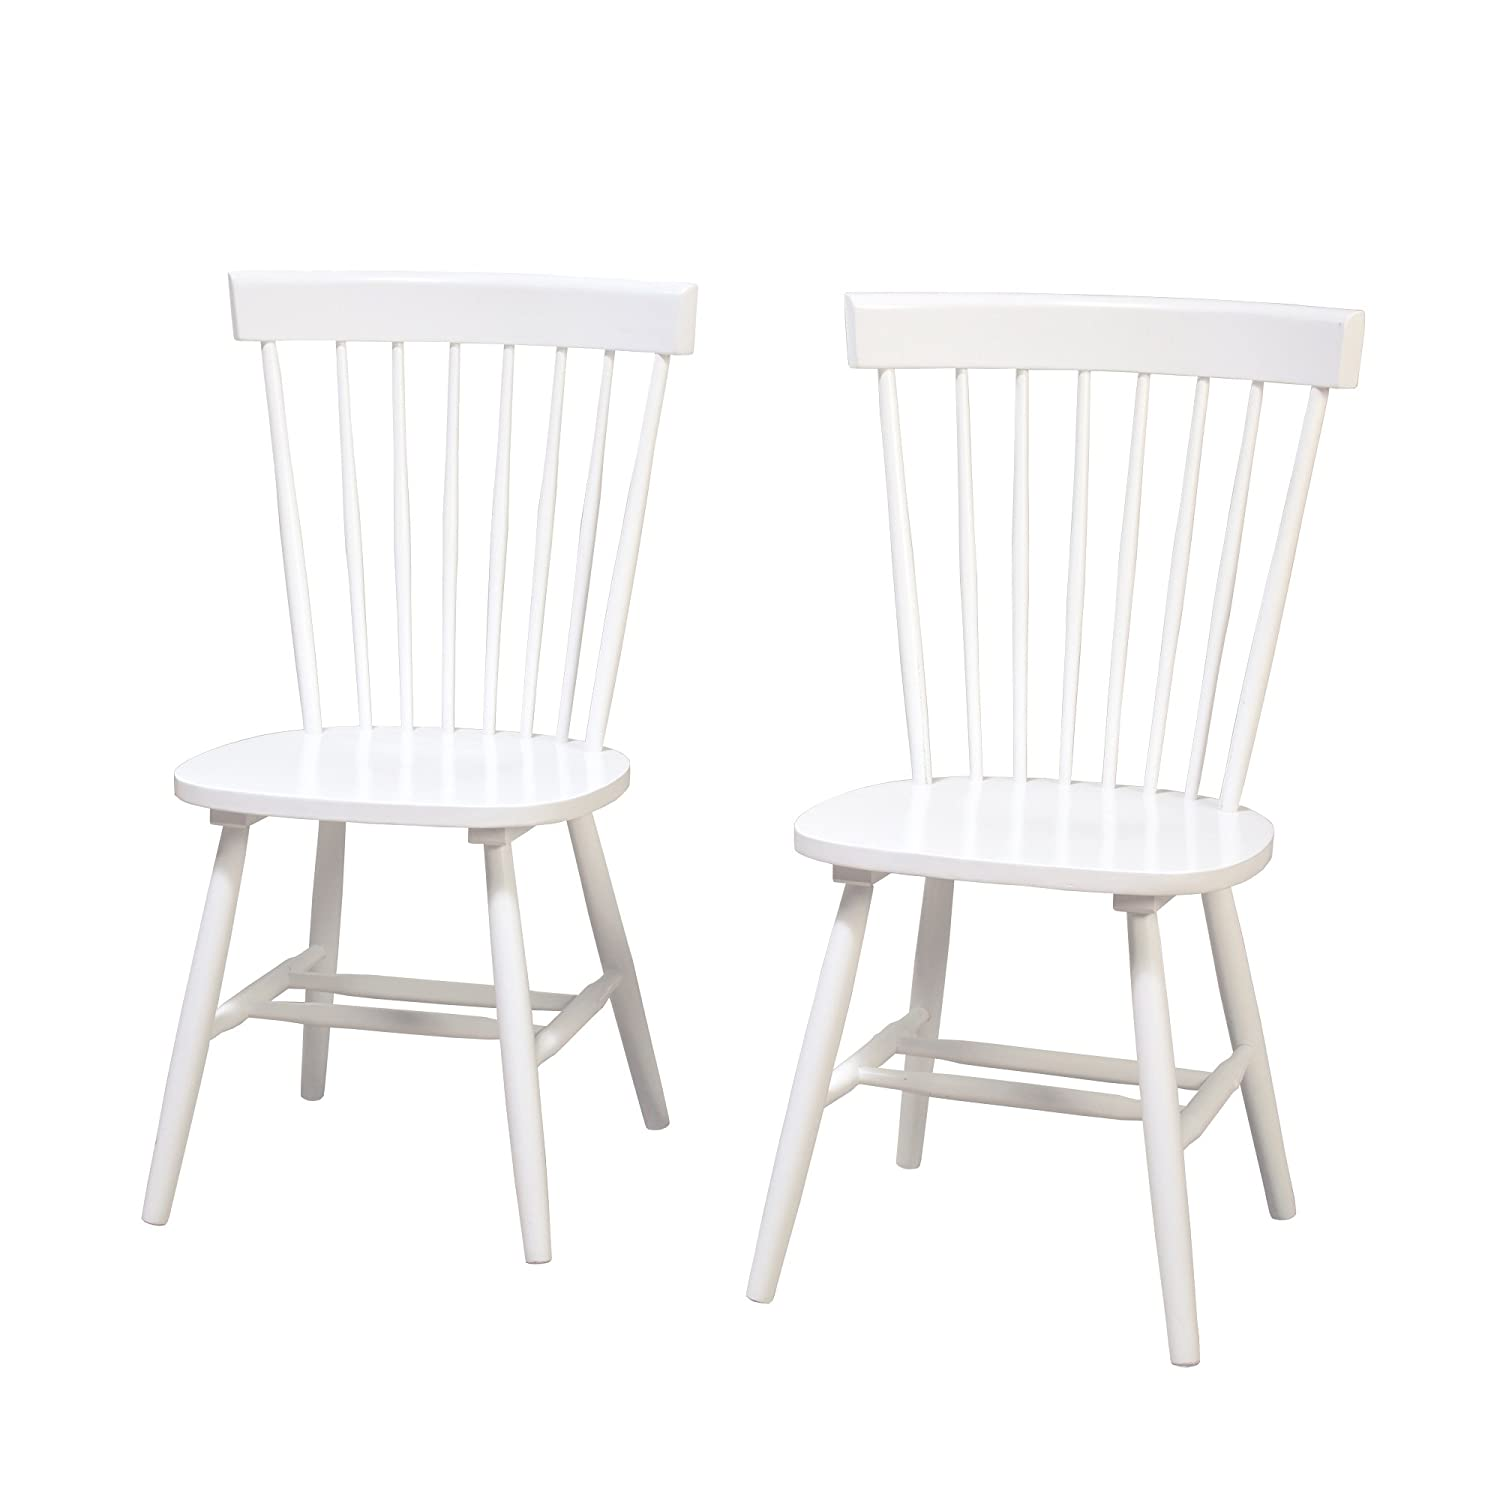 Amazon com target marketing systems 64918wht pr venice set of 2 dining chairs white chairs